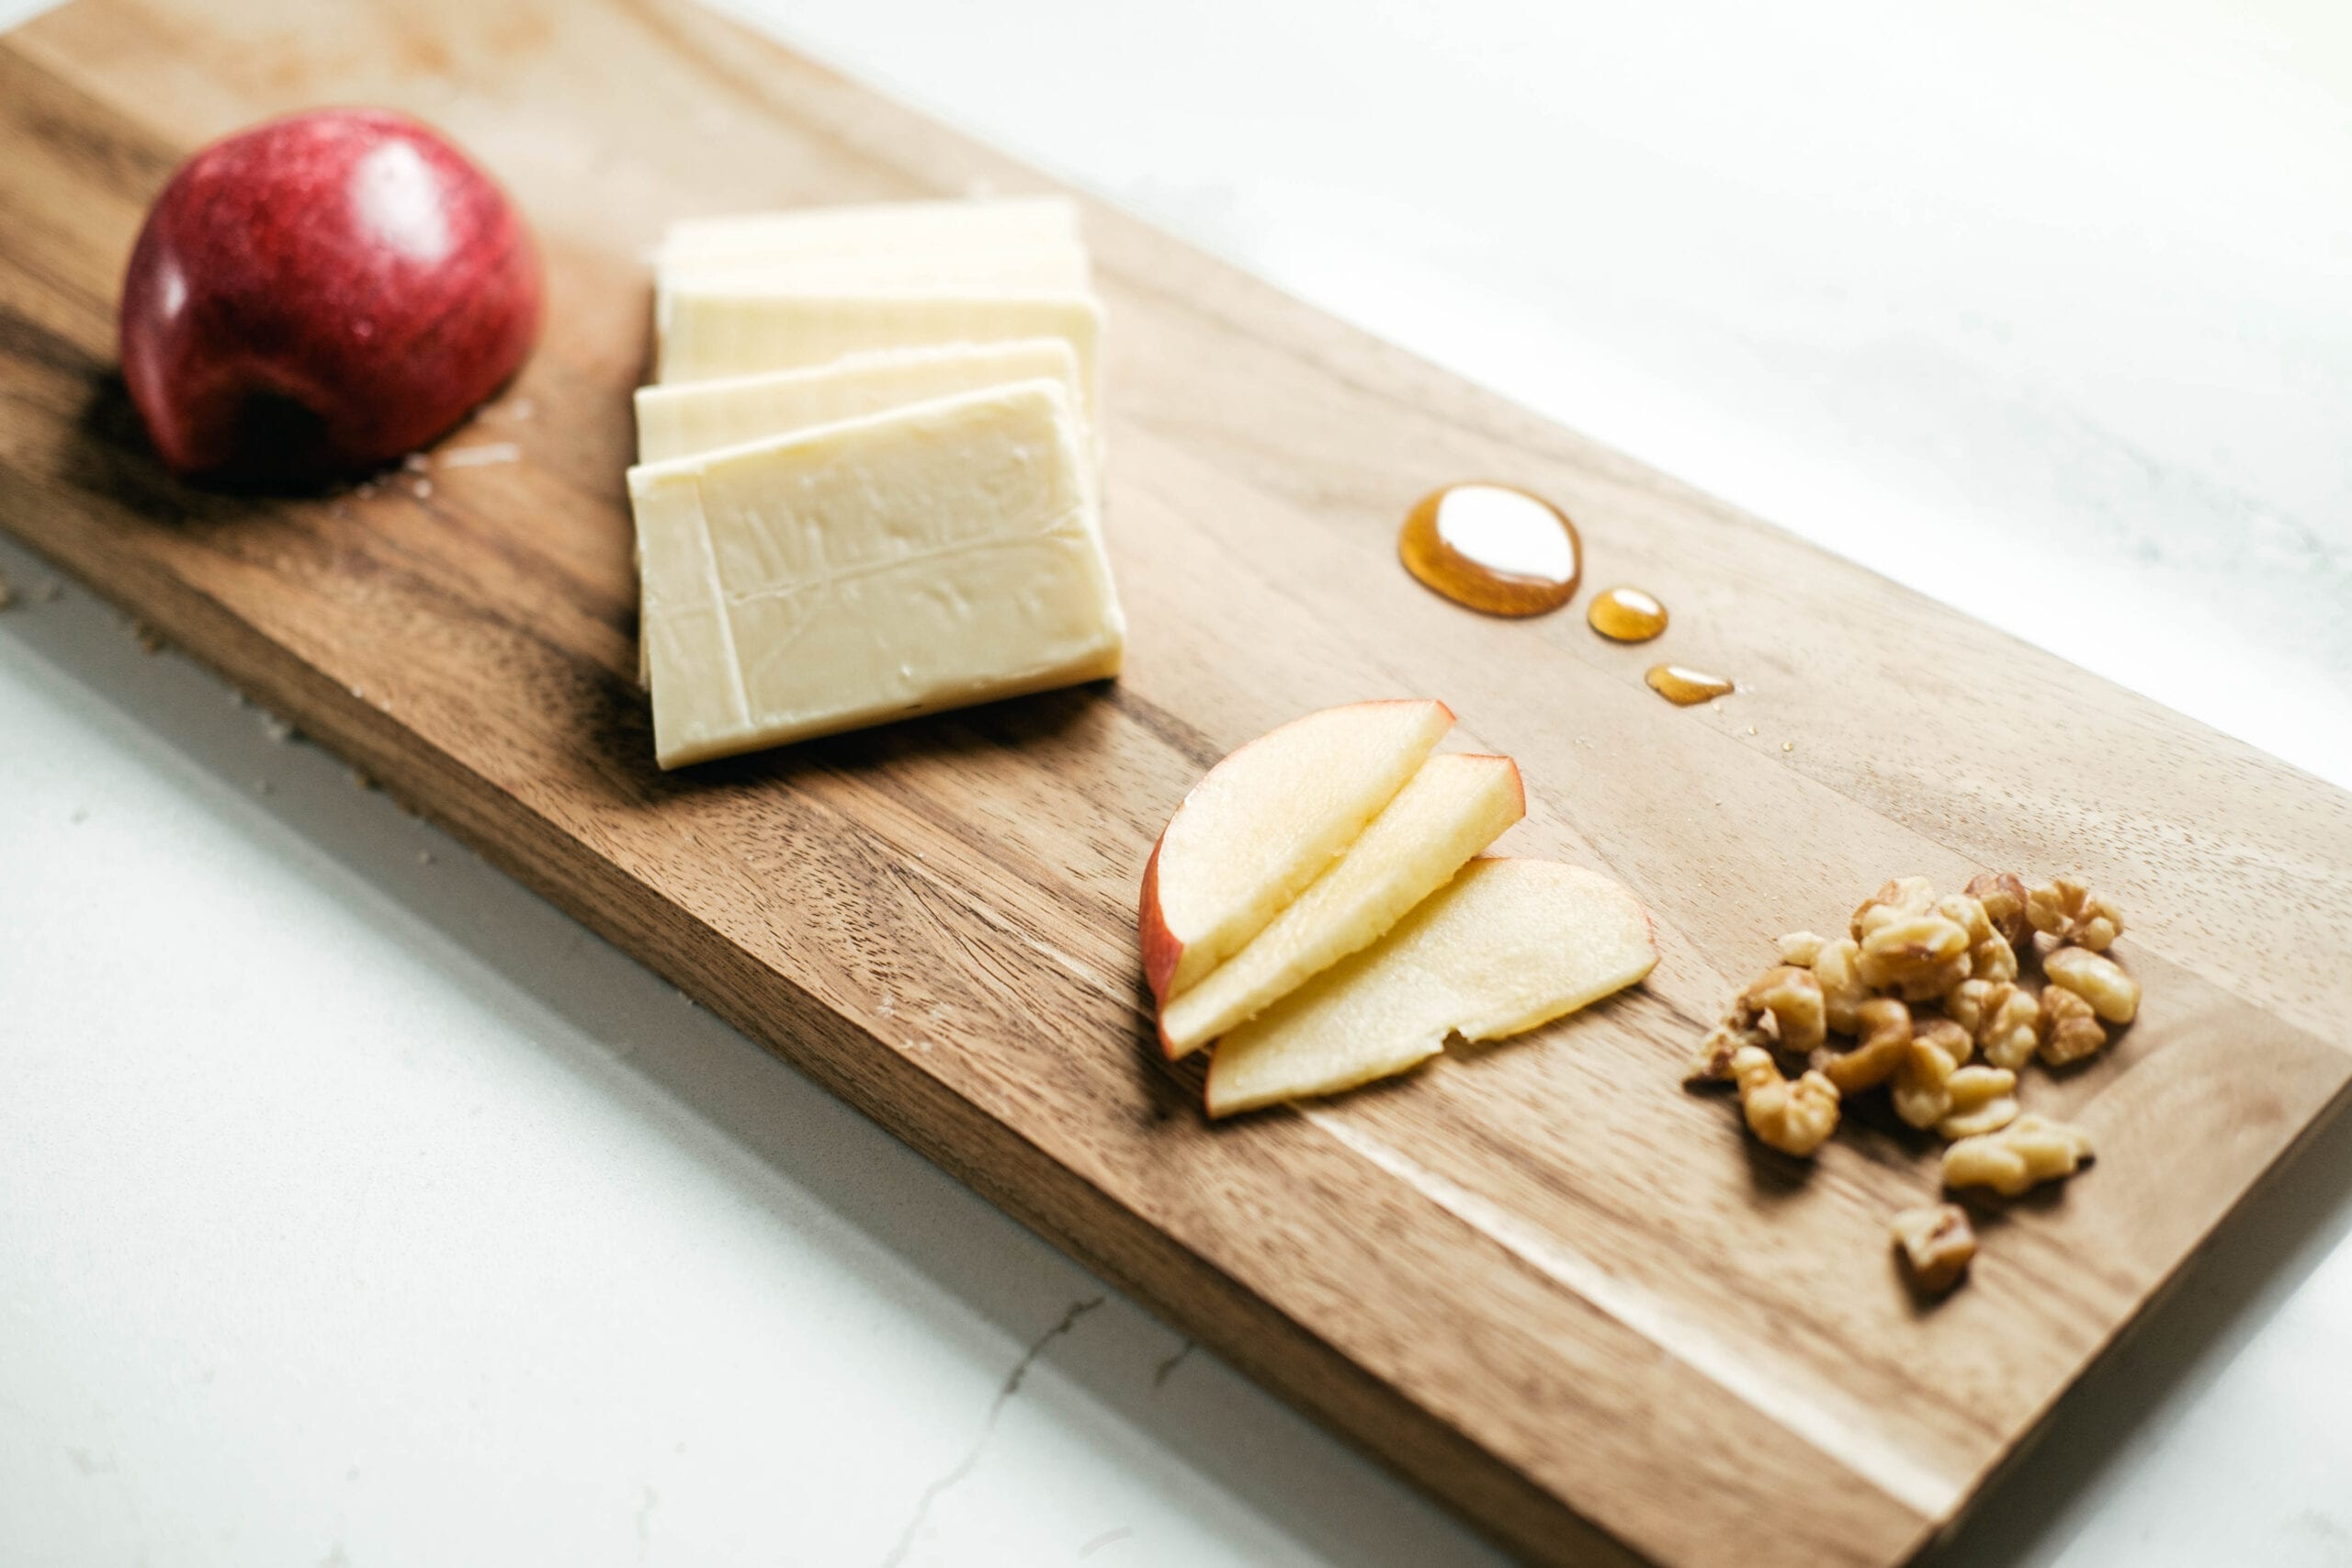 ingredients lined up on cutting board